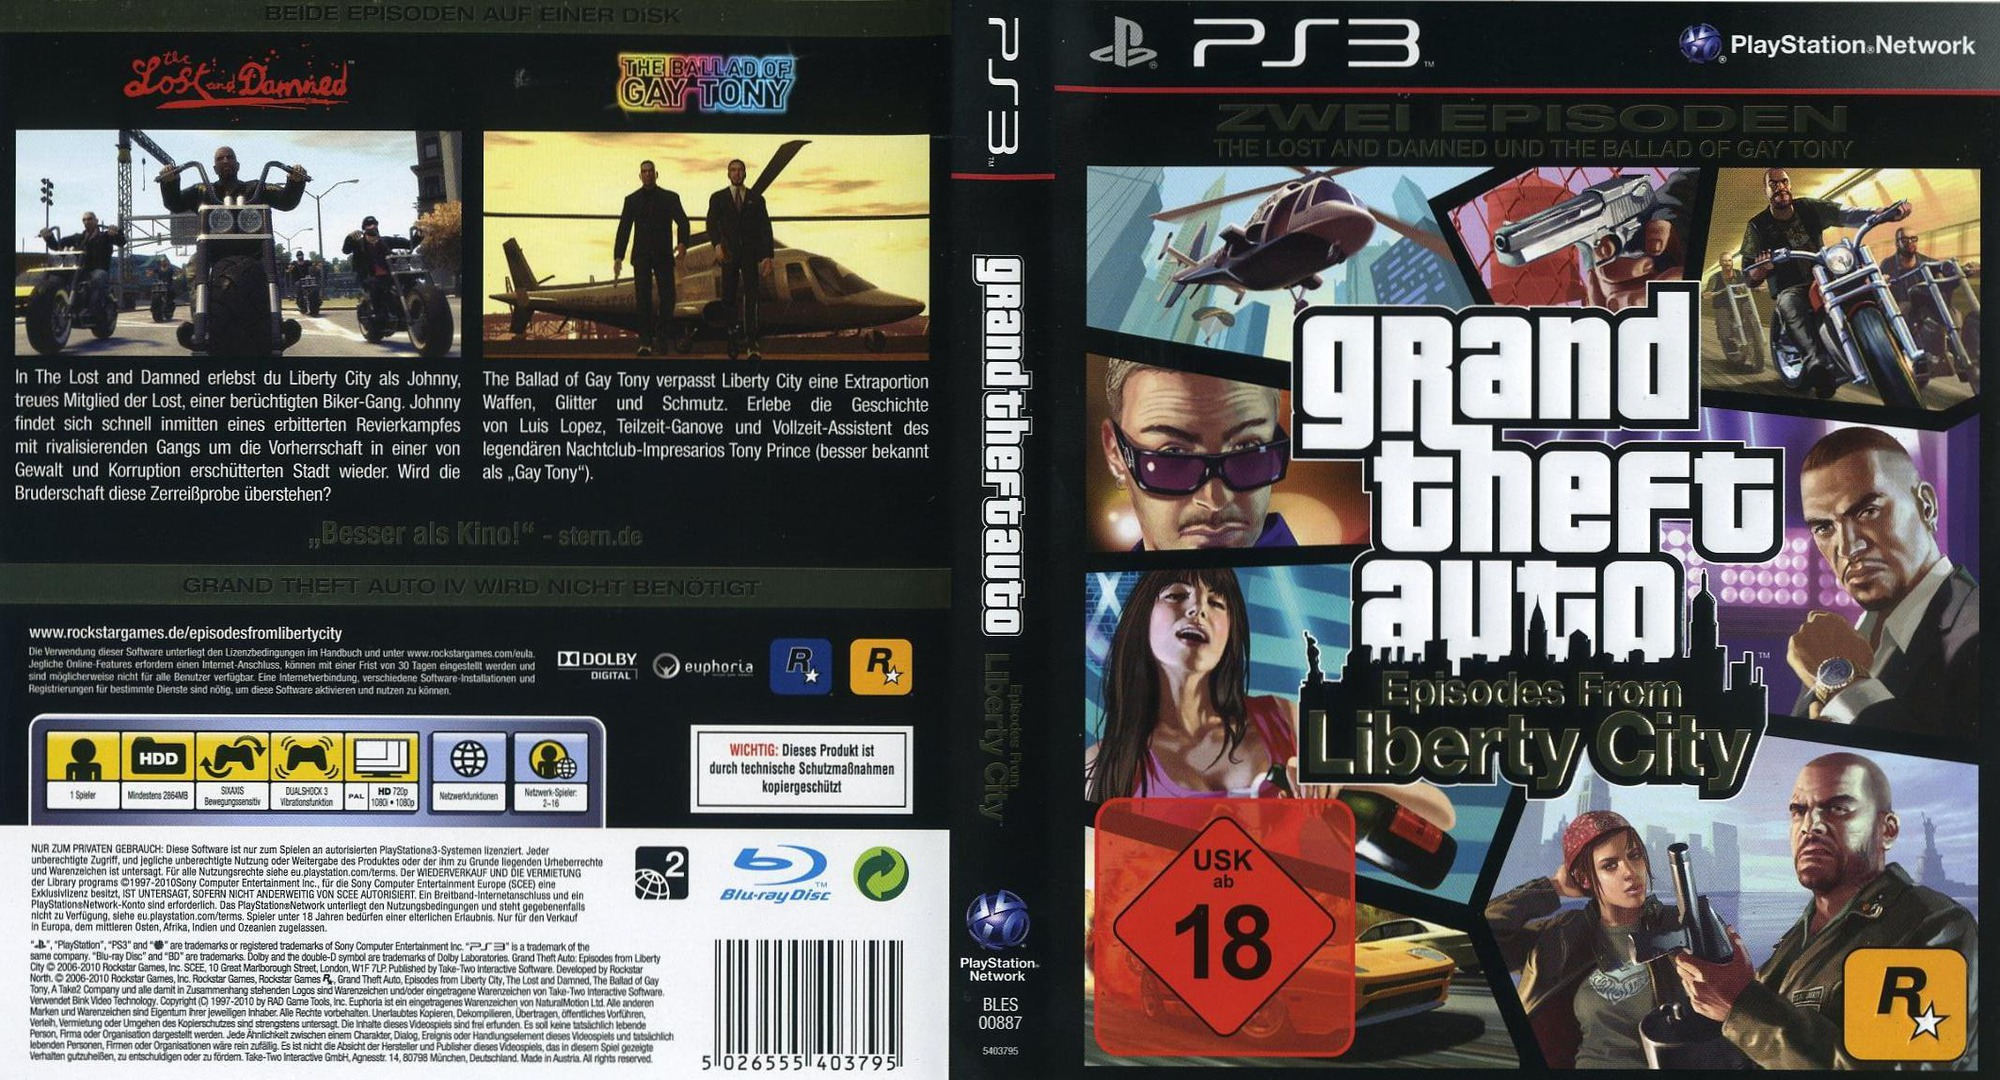 Grand Theft Auto Episodes from Liberty City Cheats